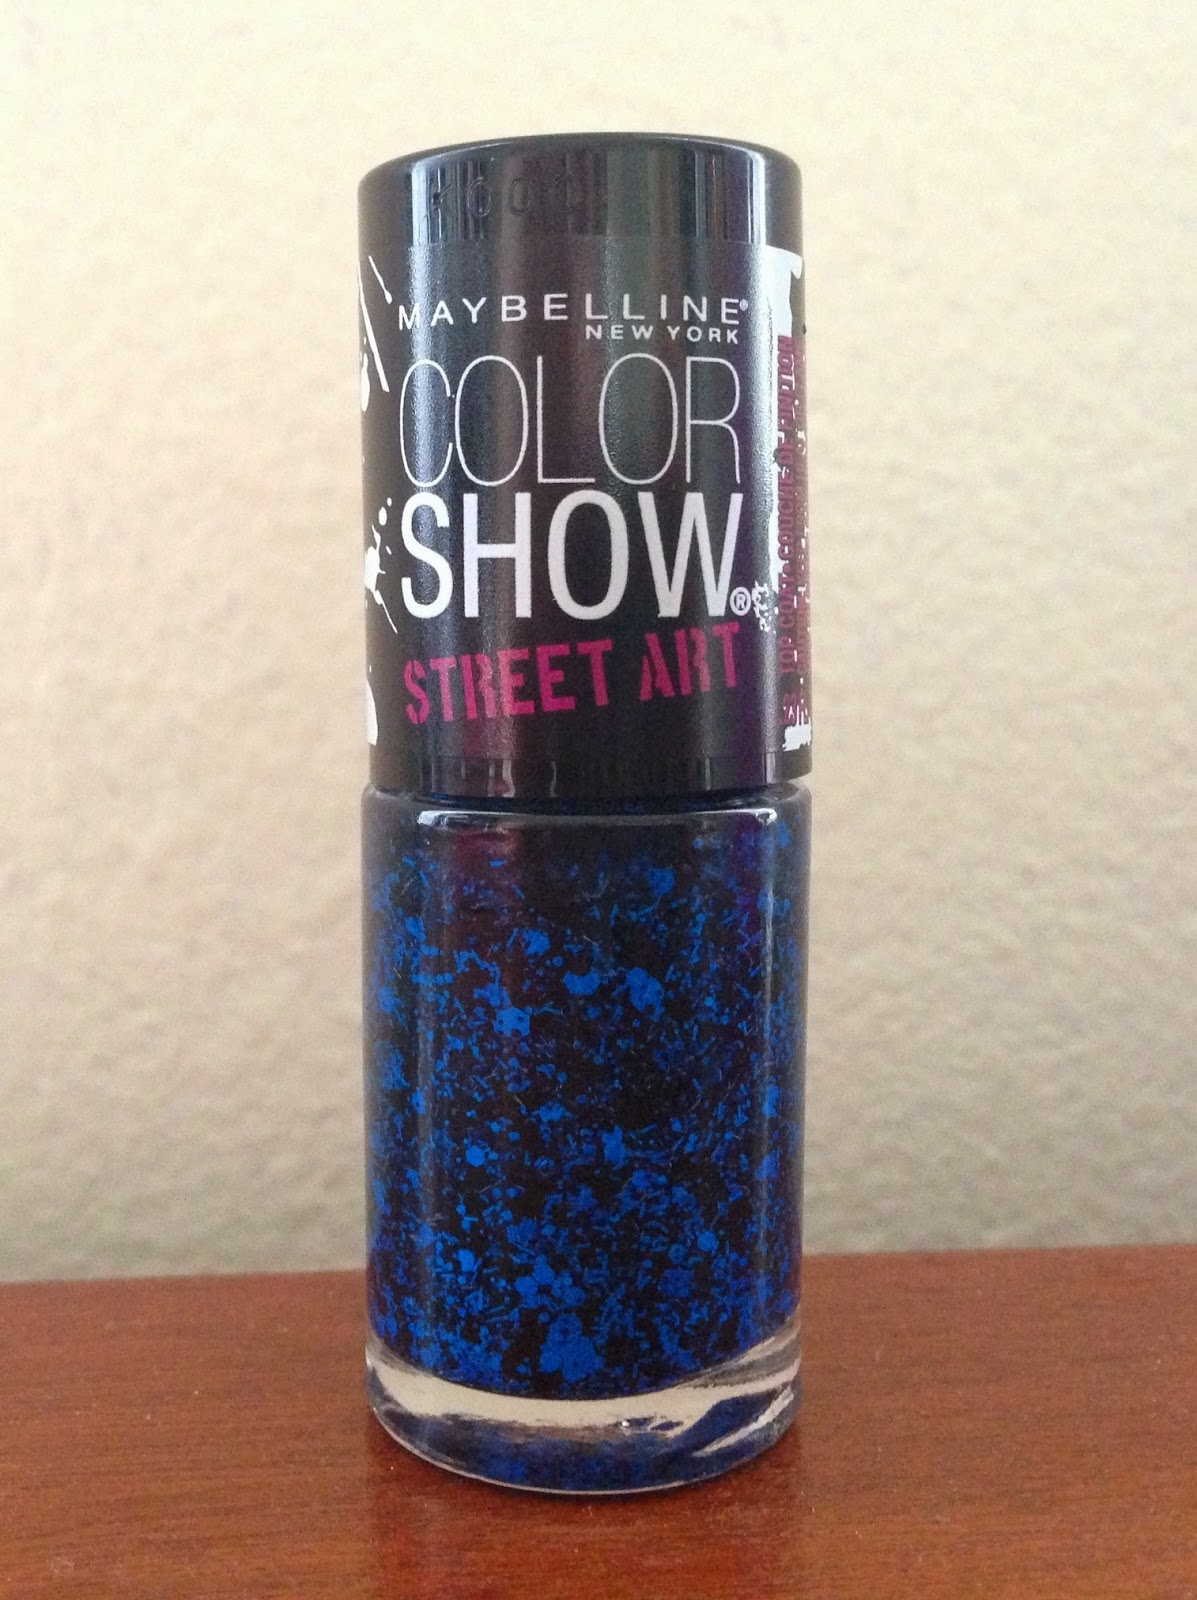 auxiliary beauty: Review: Maybelline Nighttime Noise